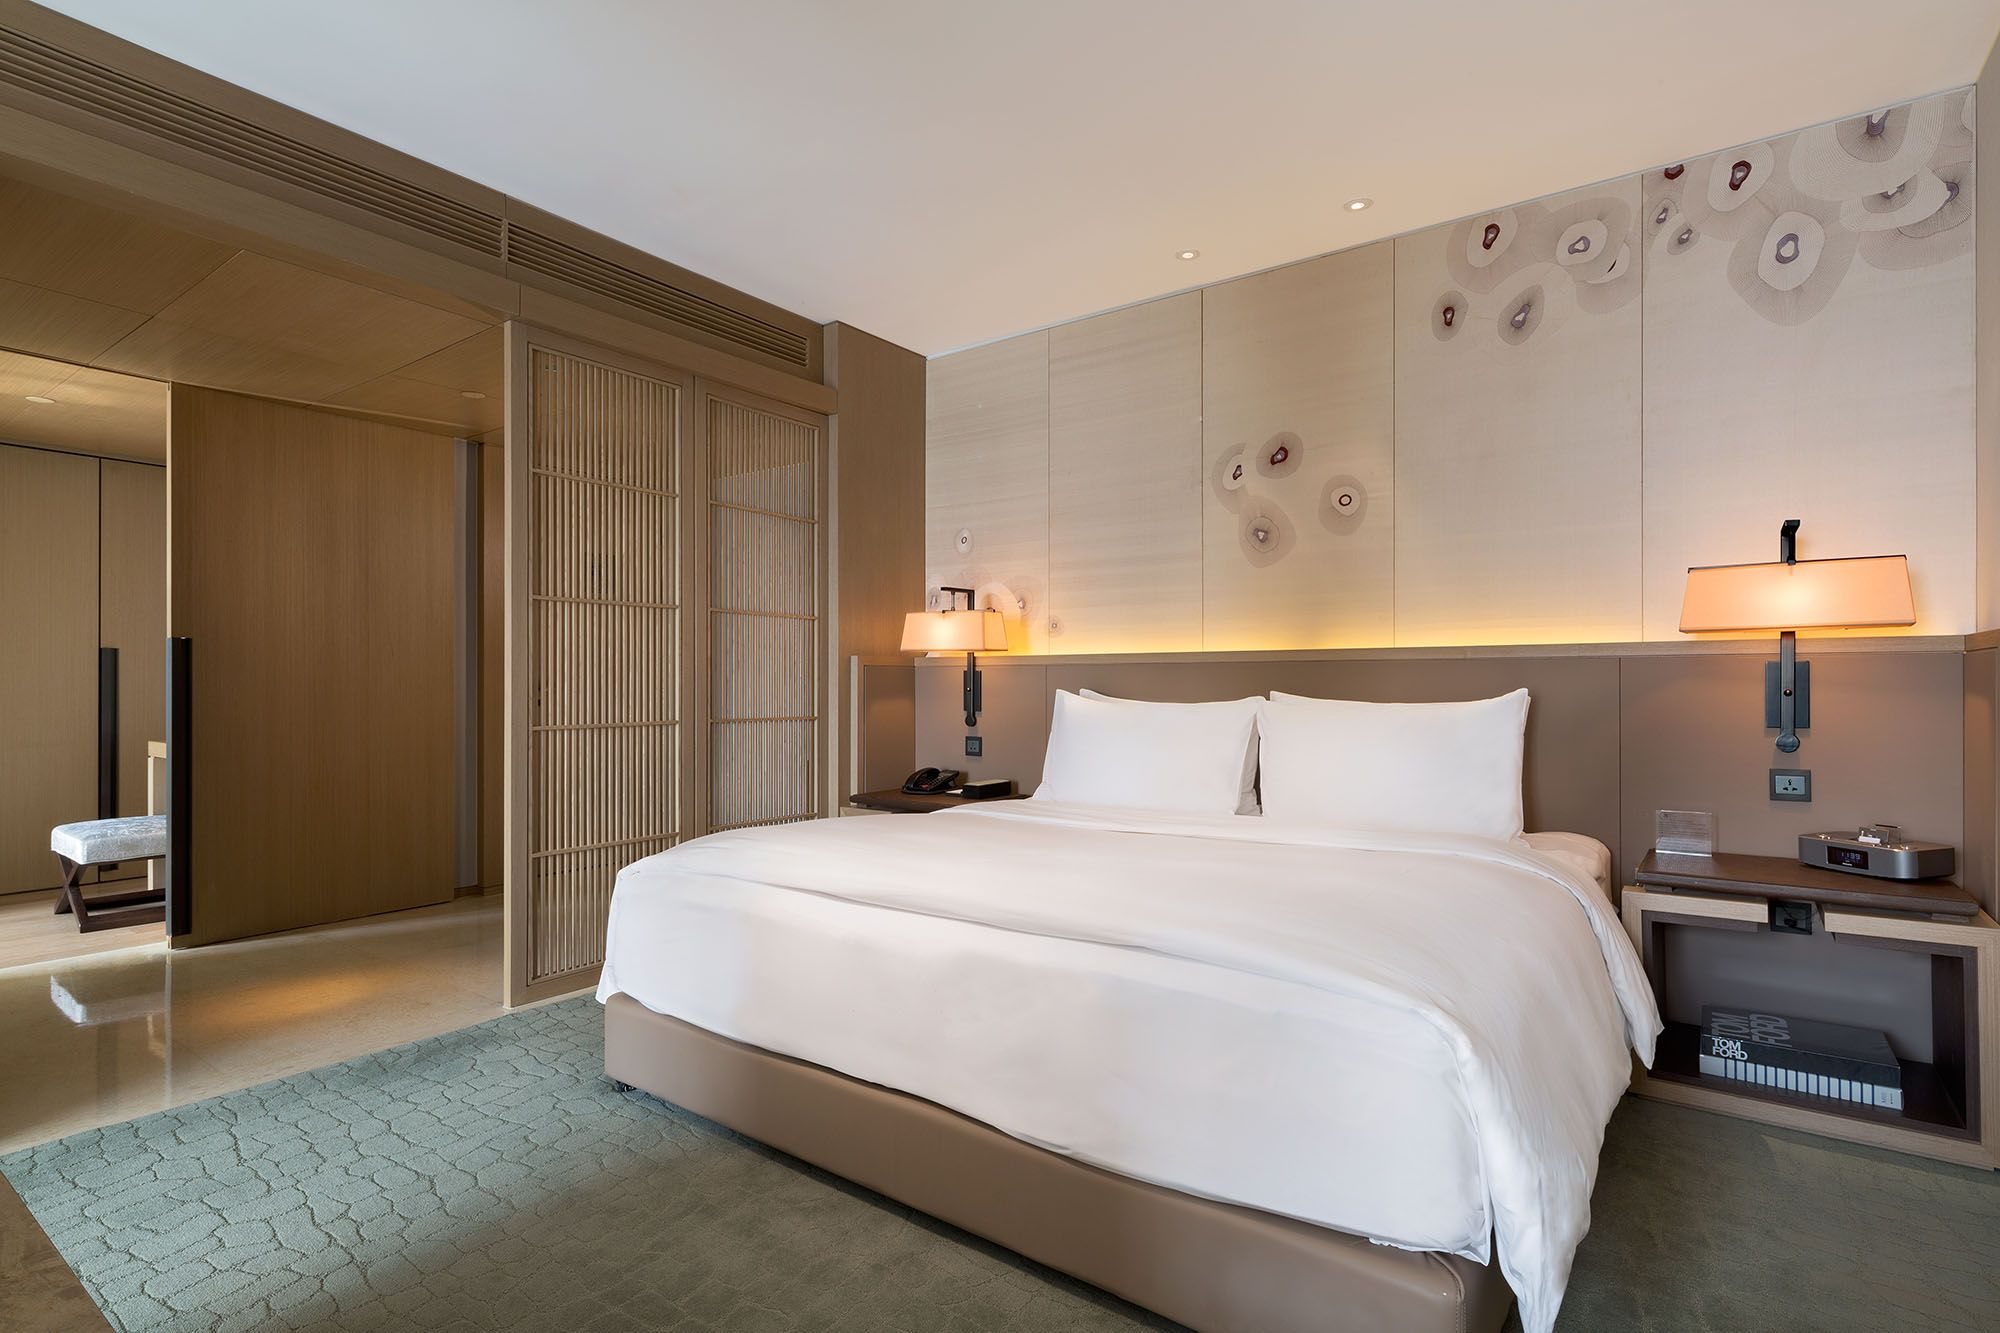 The East Hotel in HangZhou design by